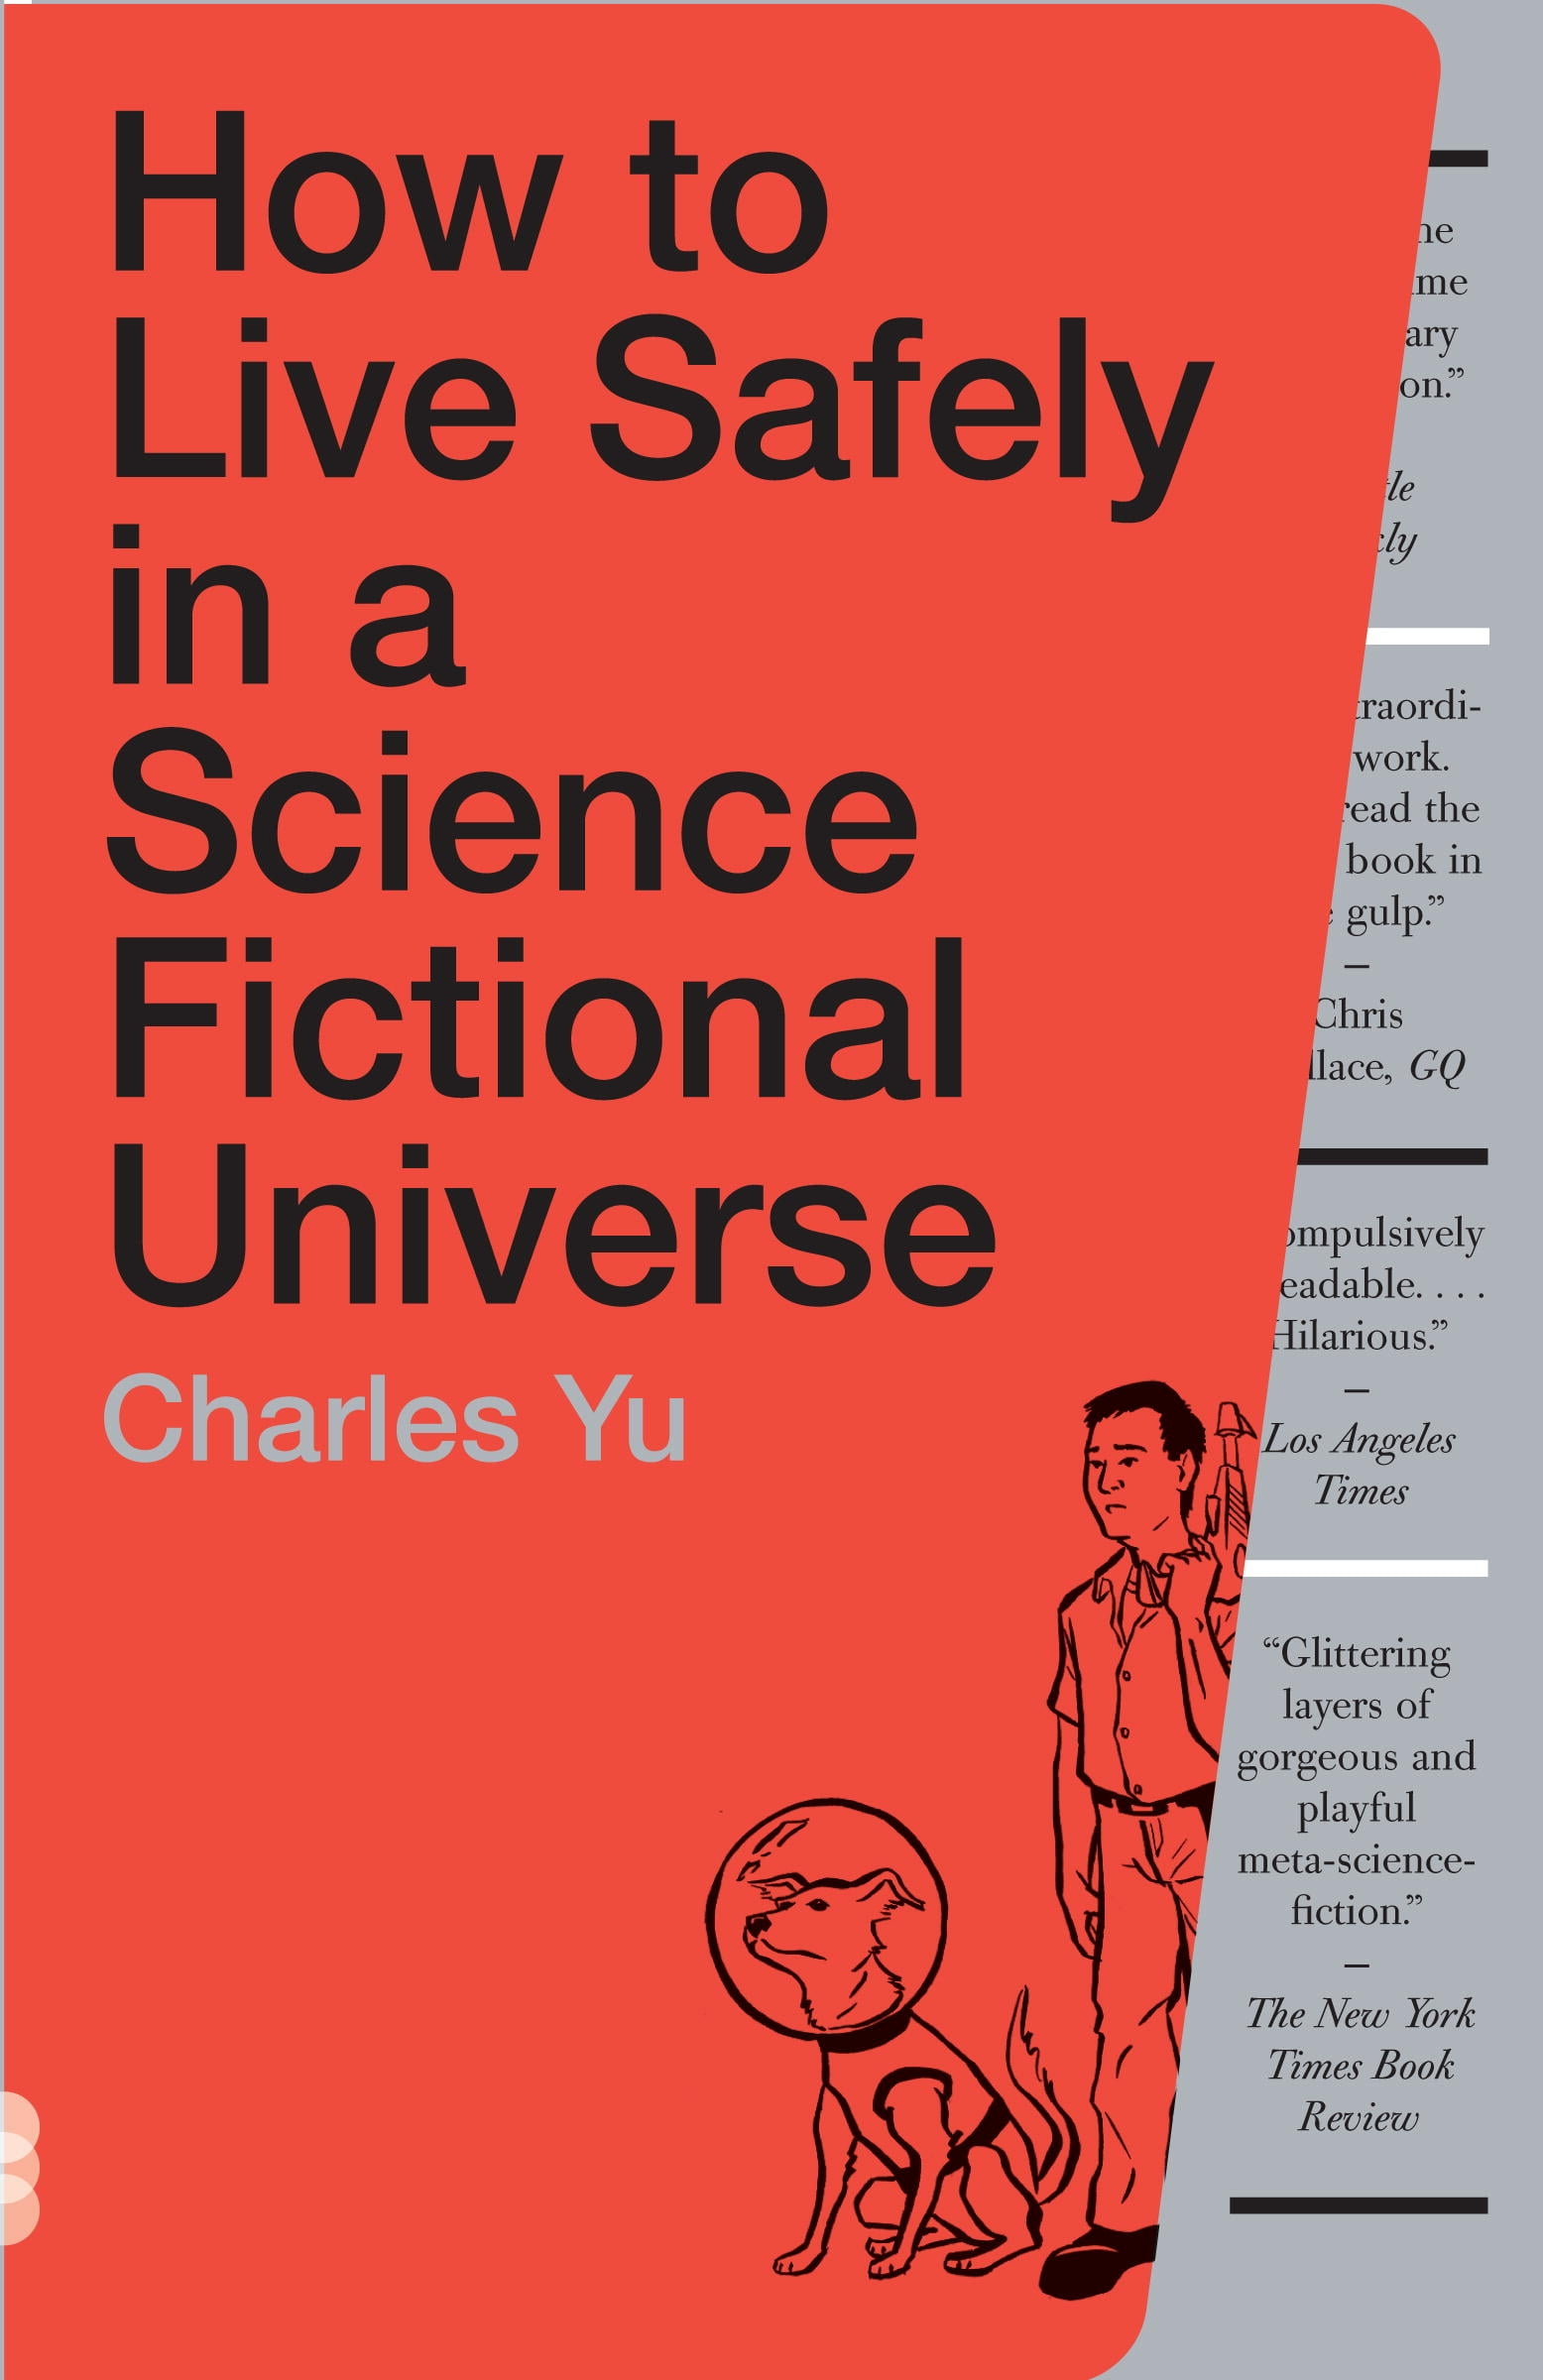 How to Live Safely in a Science Fictional Universe 978-0307379481 EPUB de Charles Yu